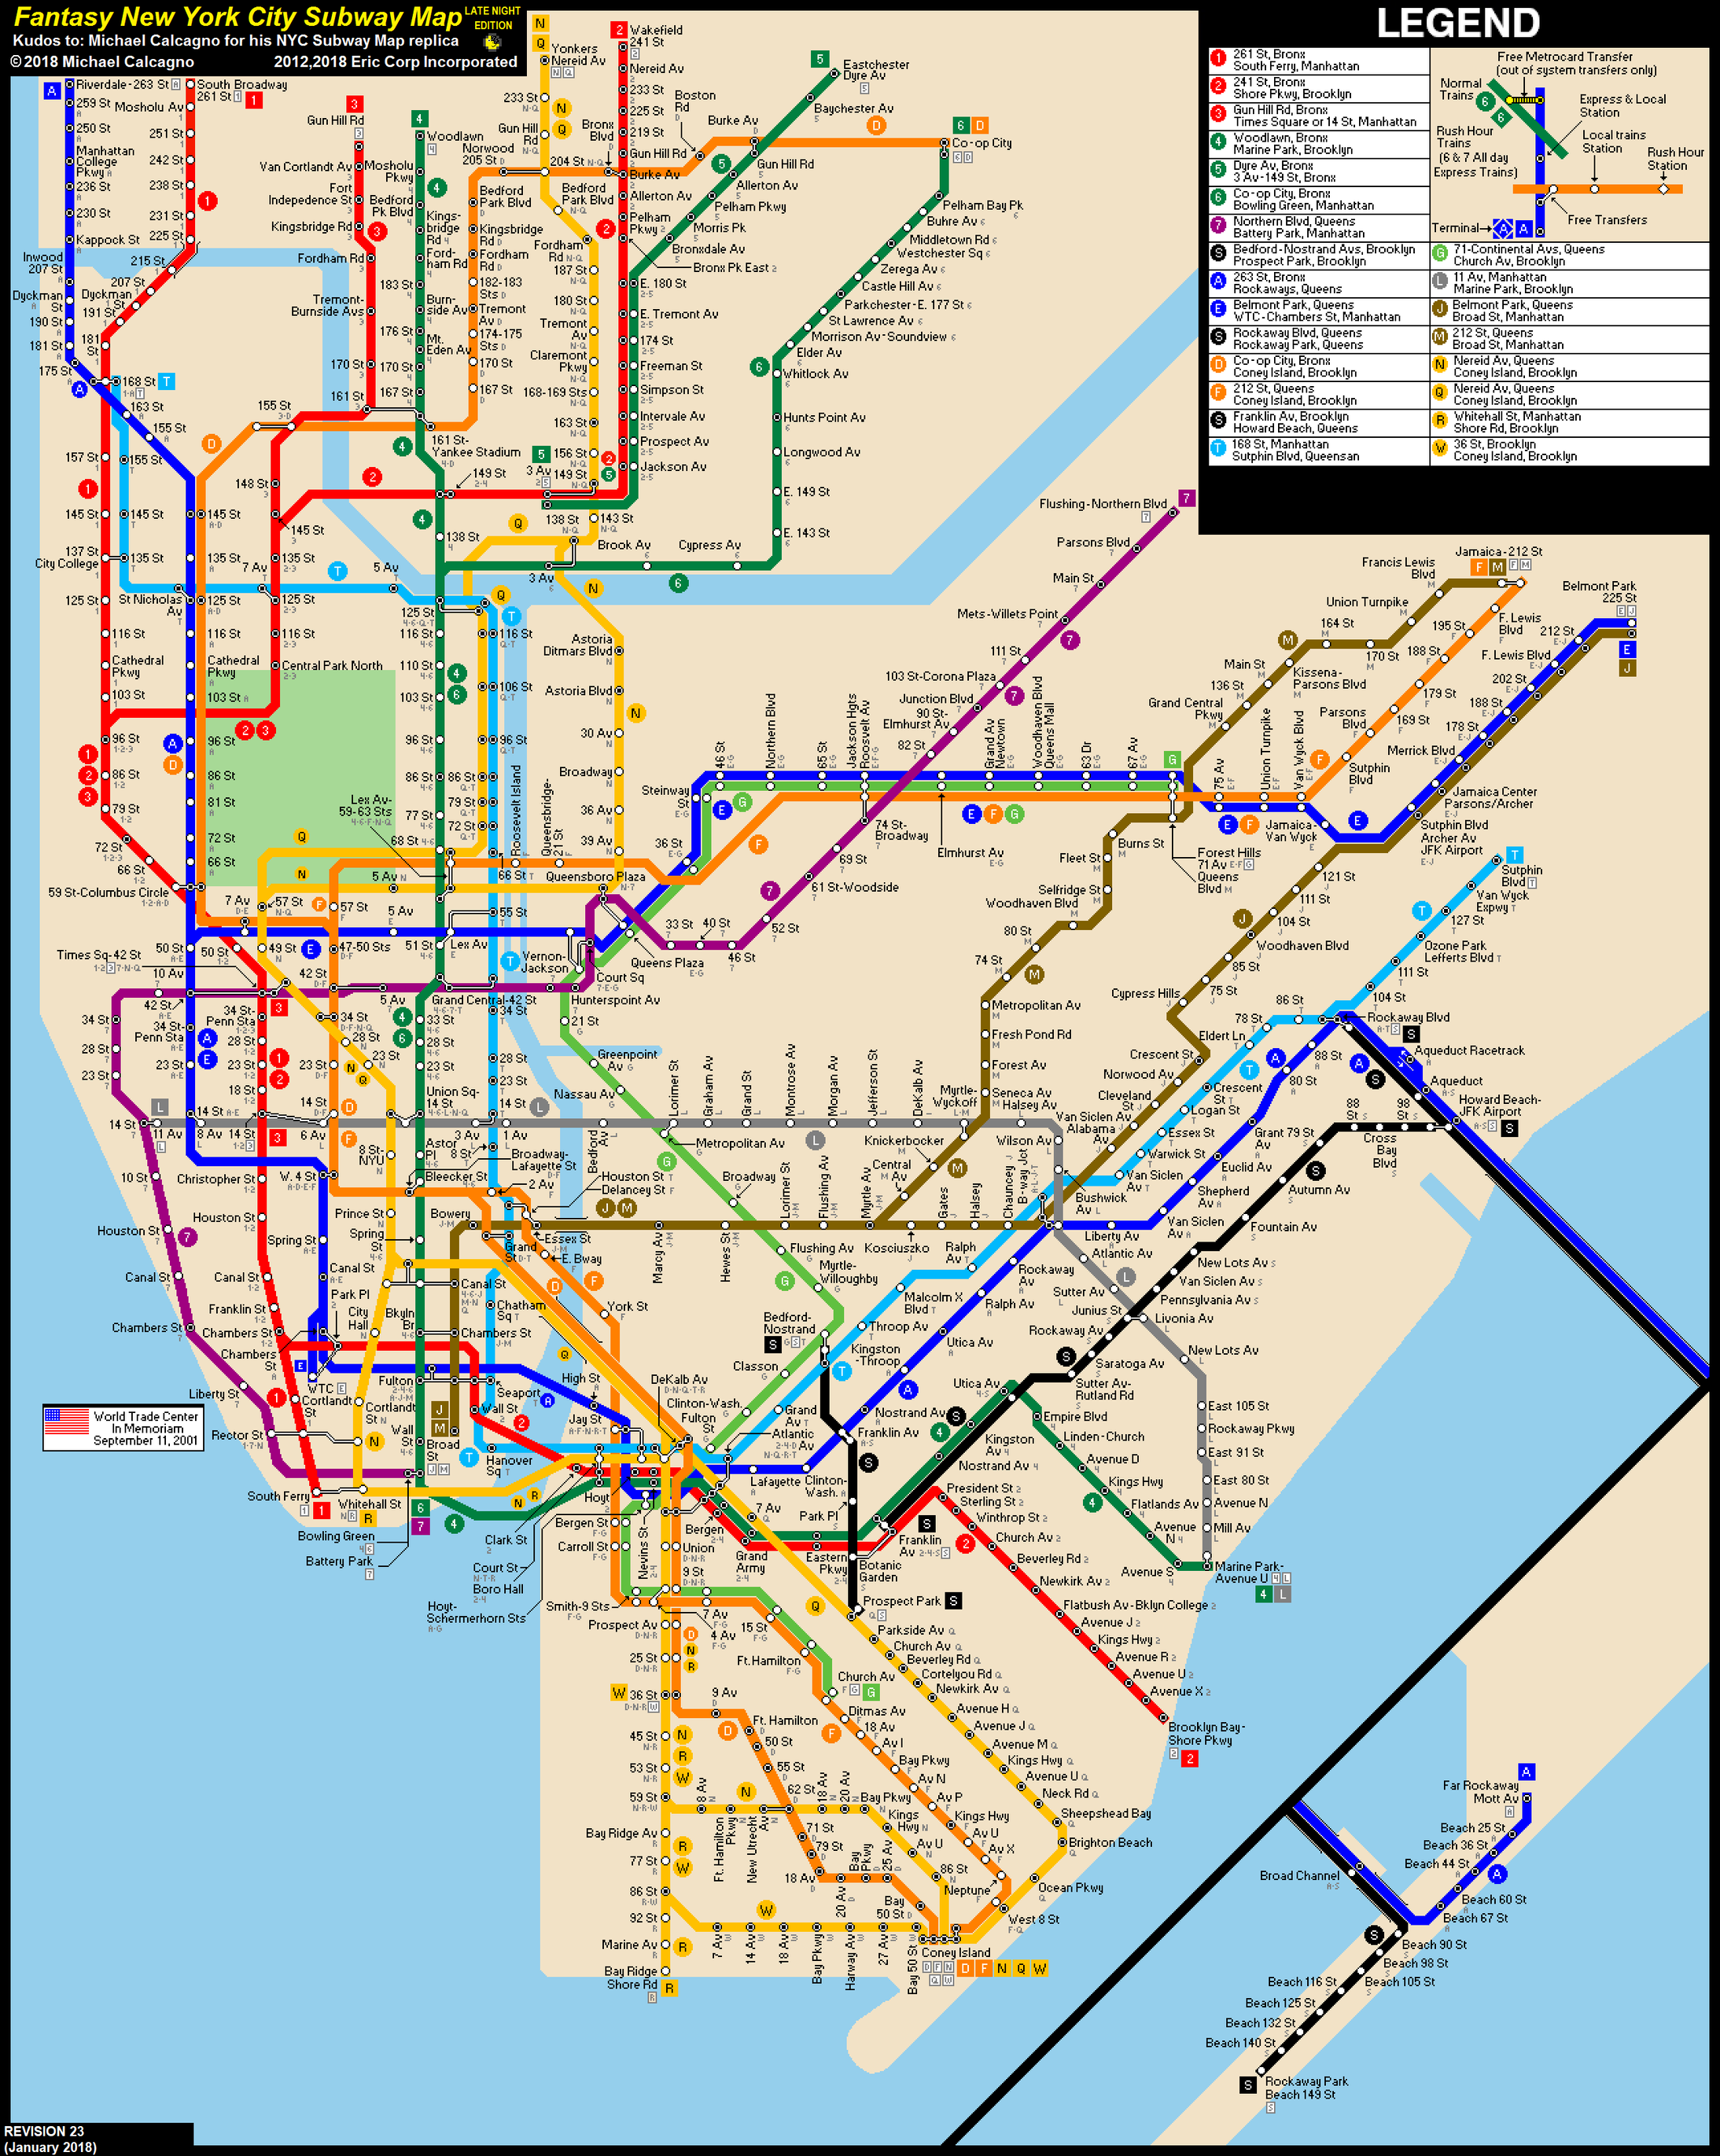 N Subway Map.Nyc Subway Fantasy Map Revision 23 Late Nights By Ecinc2xxx On